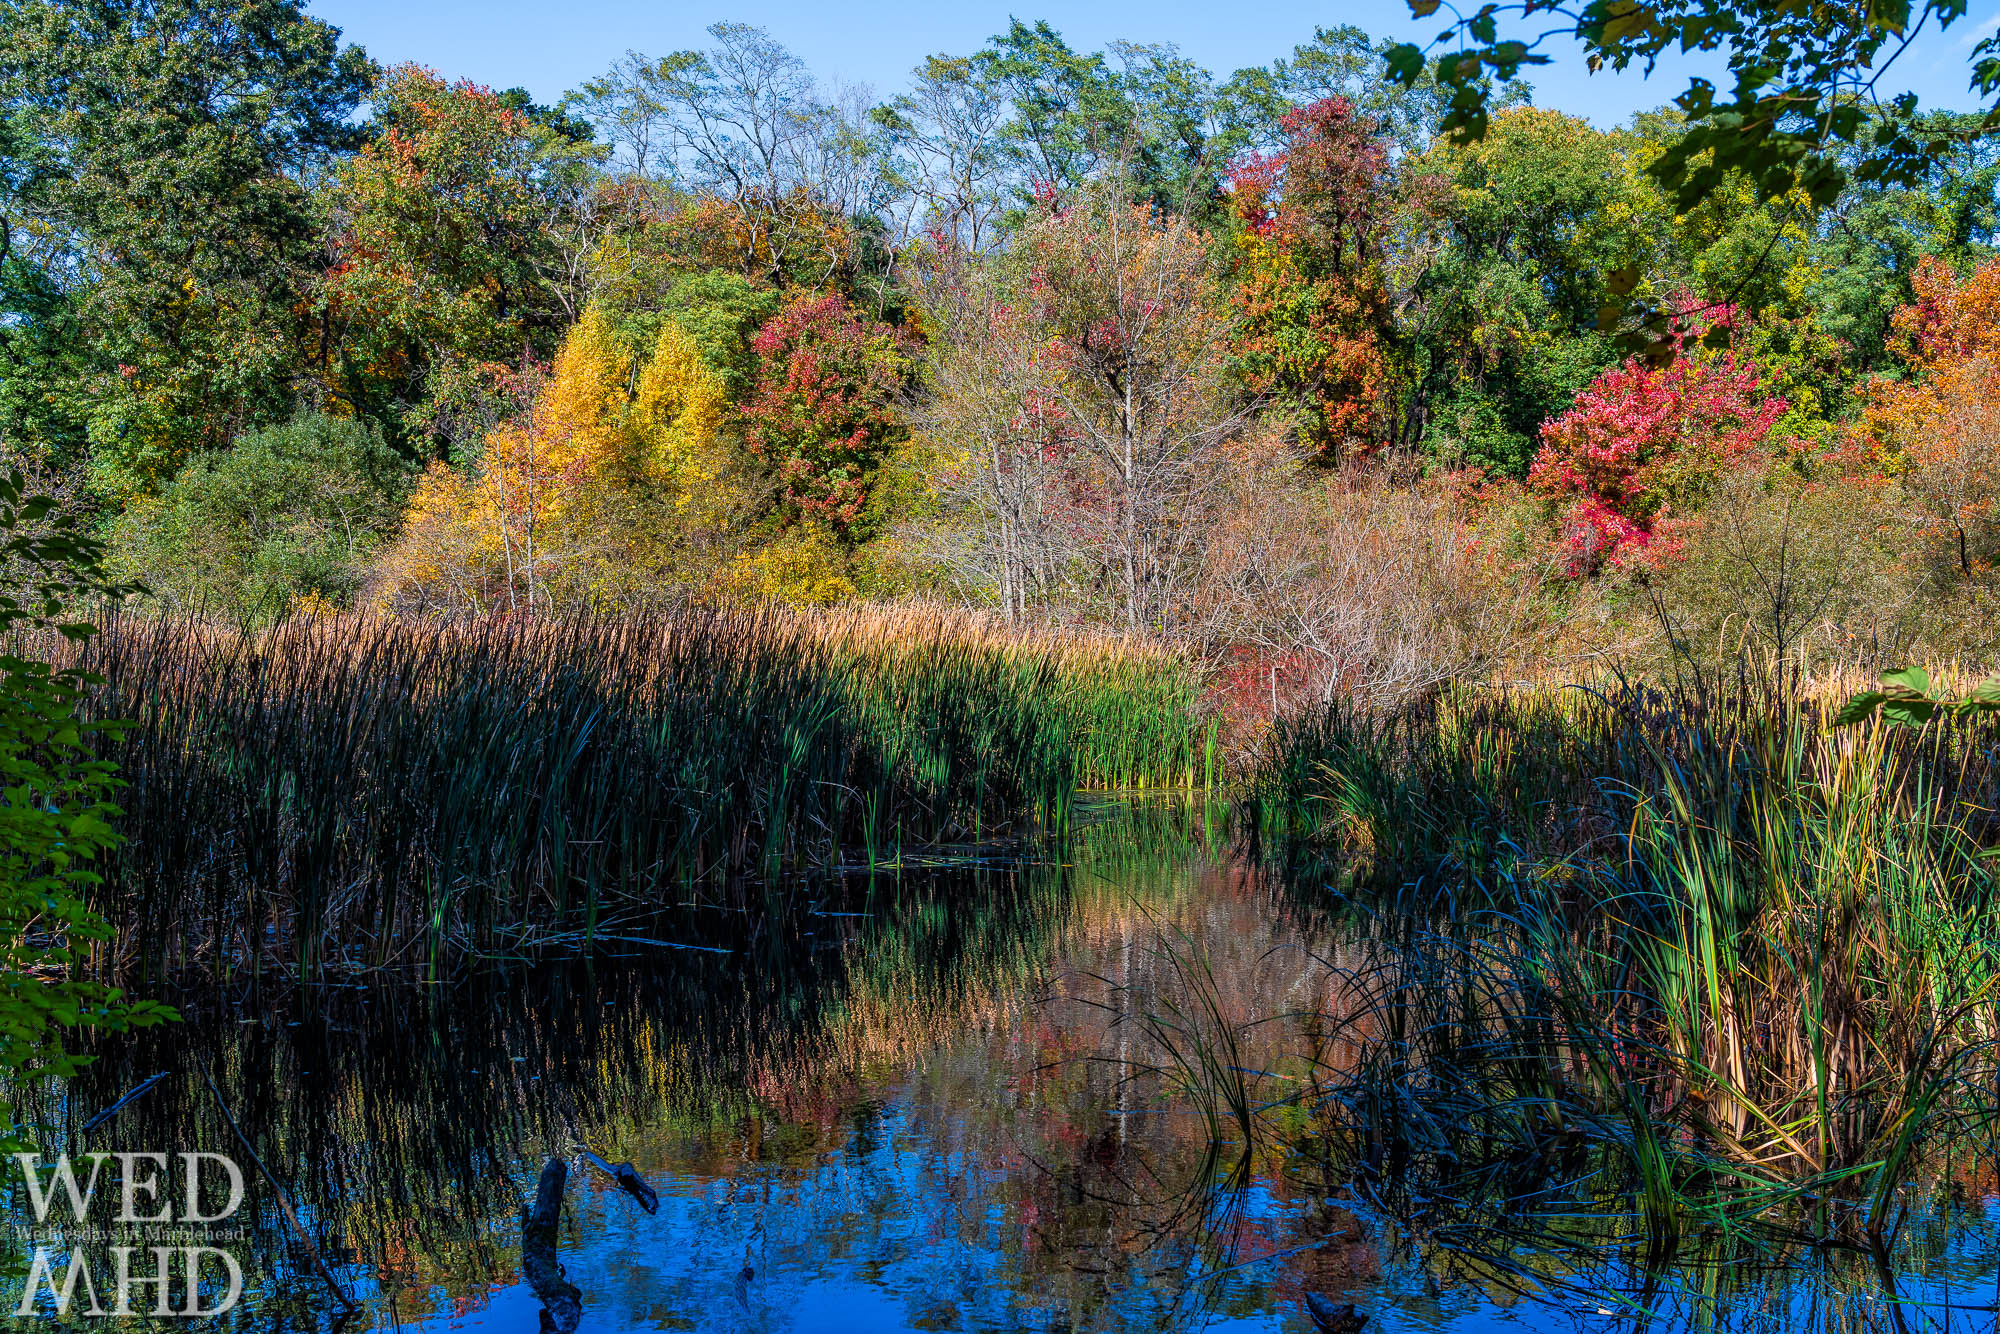 Peak color in the trees and grass at Hawthorn Pond highlight the beauty to be found in some secret locations in Marblehead